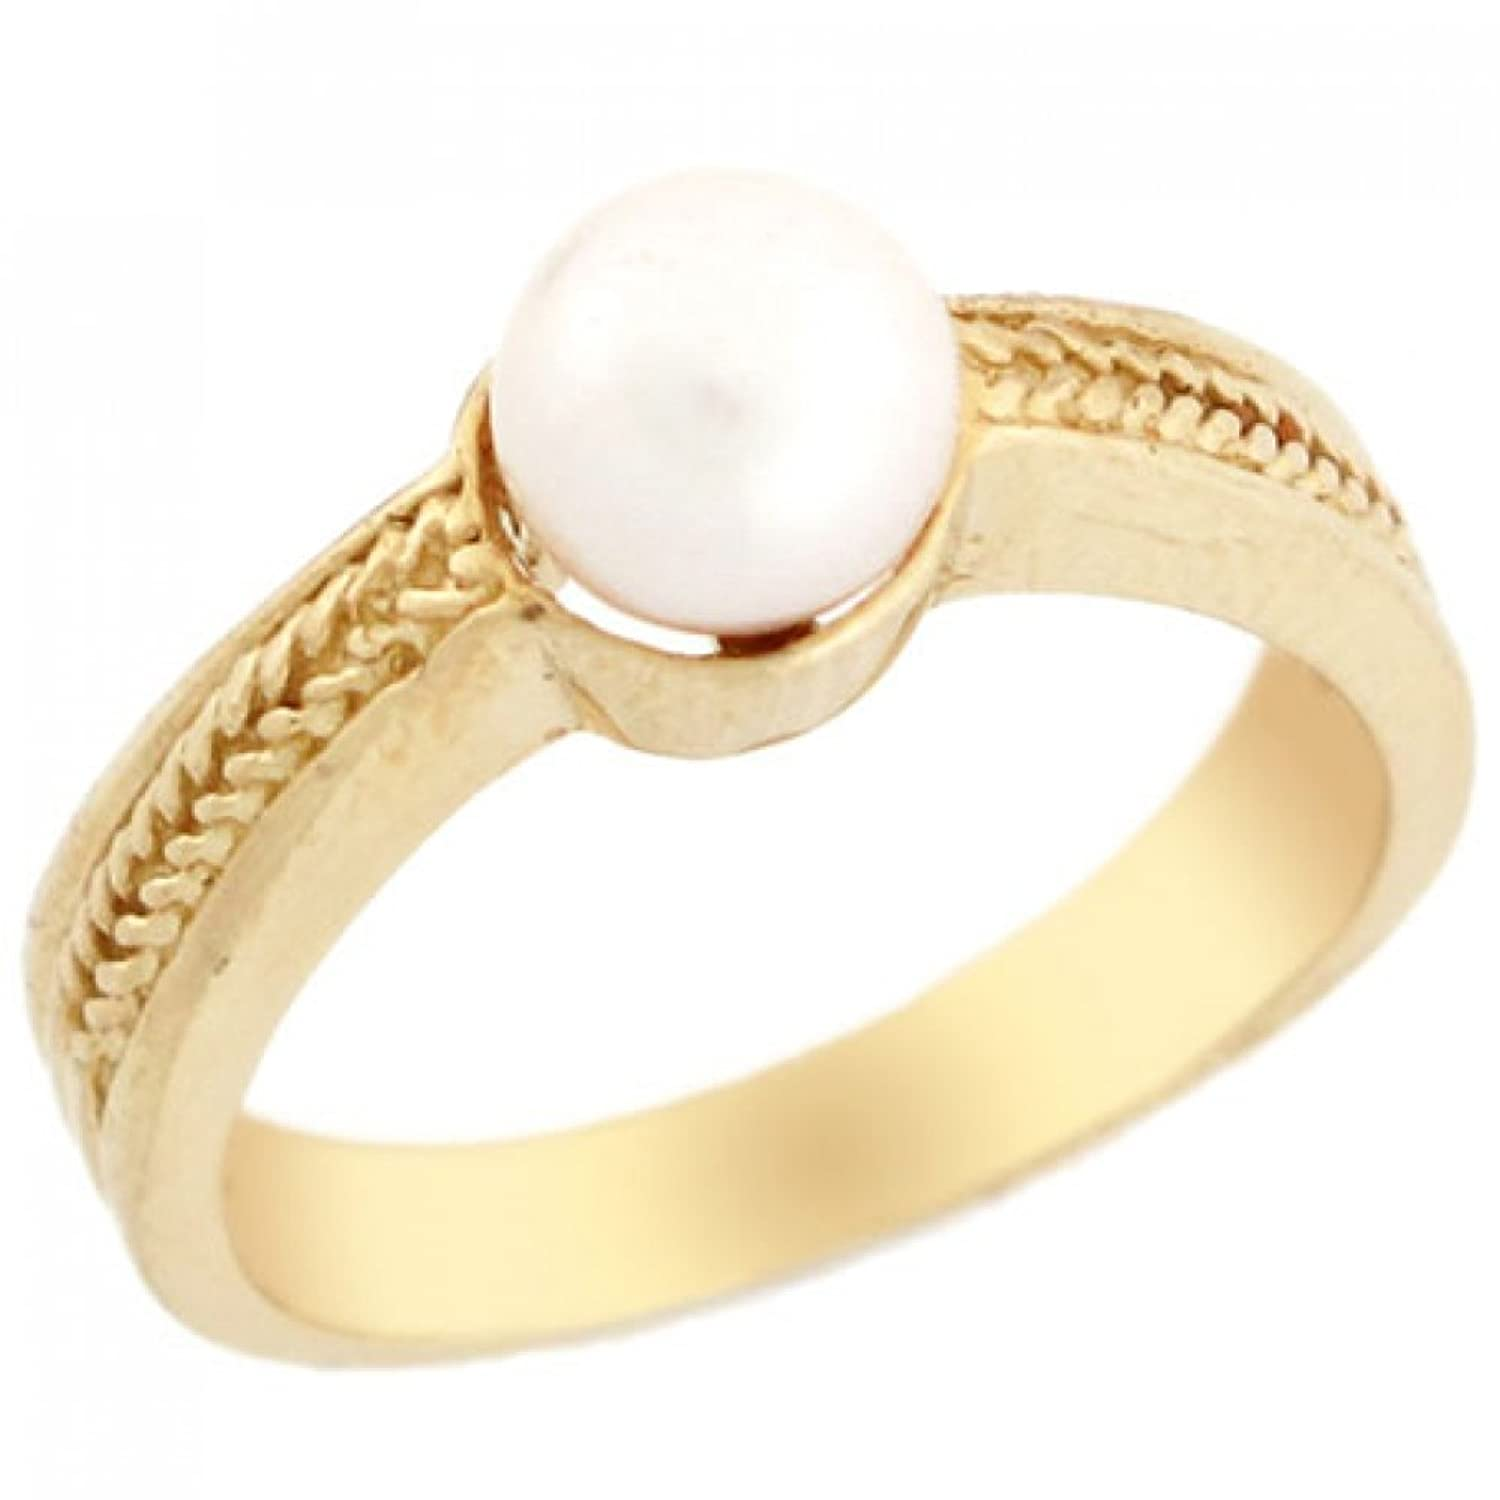 10k Solid Yellow Gold Freshwater Cultured Pearl Leaves Solitaire Ring Jewelry